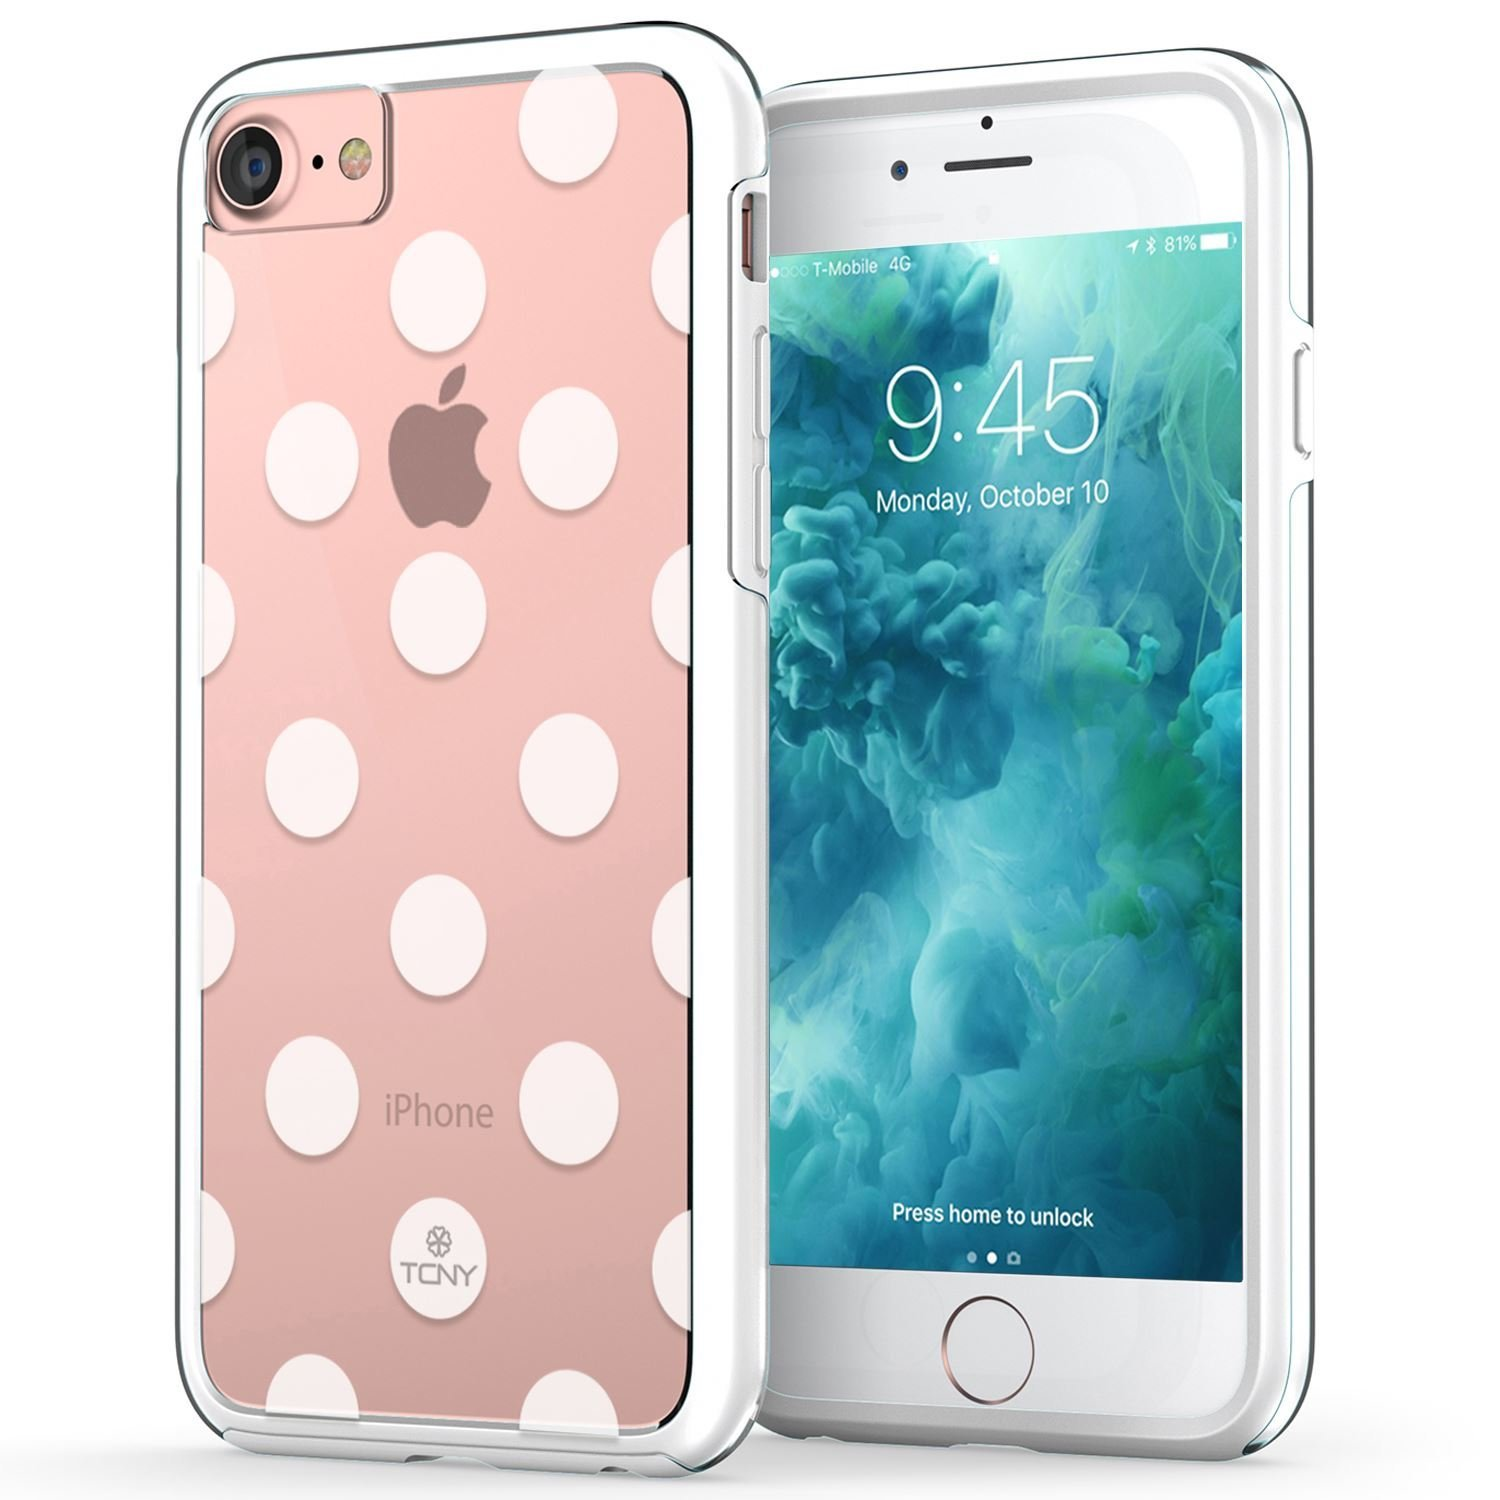 iPhone 7 Dots Case, True Color Medium Polka Dot Printed on Clear Transparent Hybrid Cover Hard + Soft Slim Thin Durable Protective Shockproof TPU Bumper Cover - White